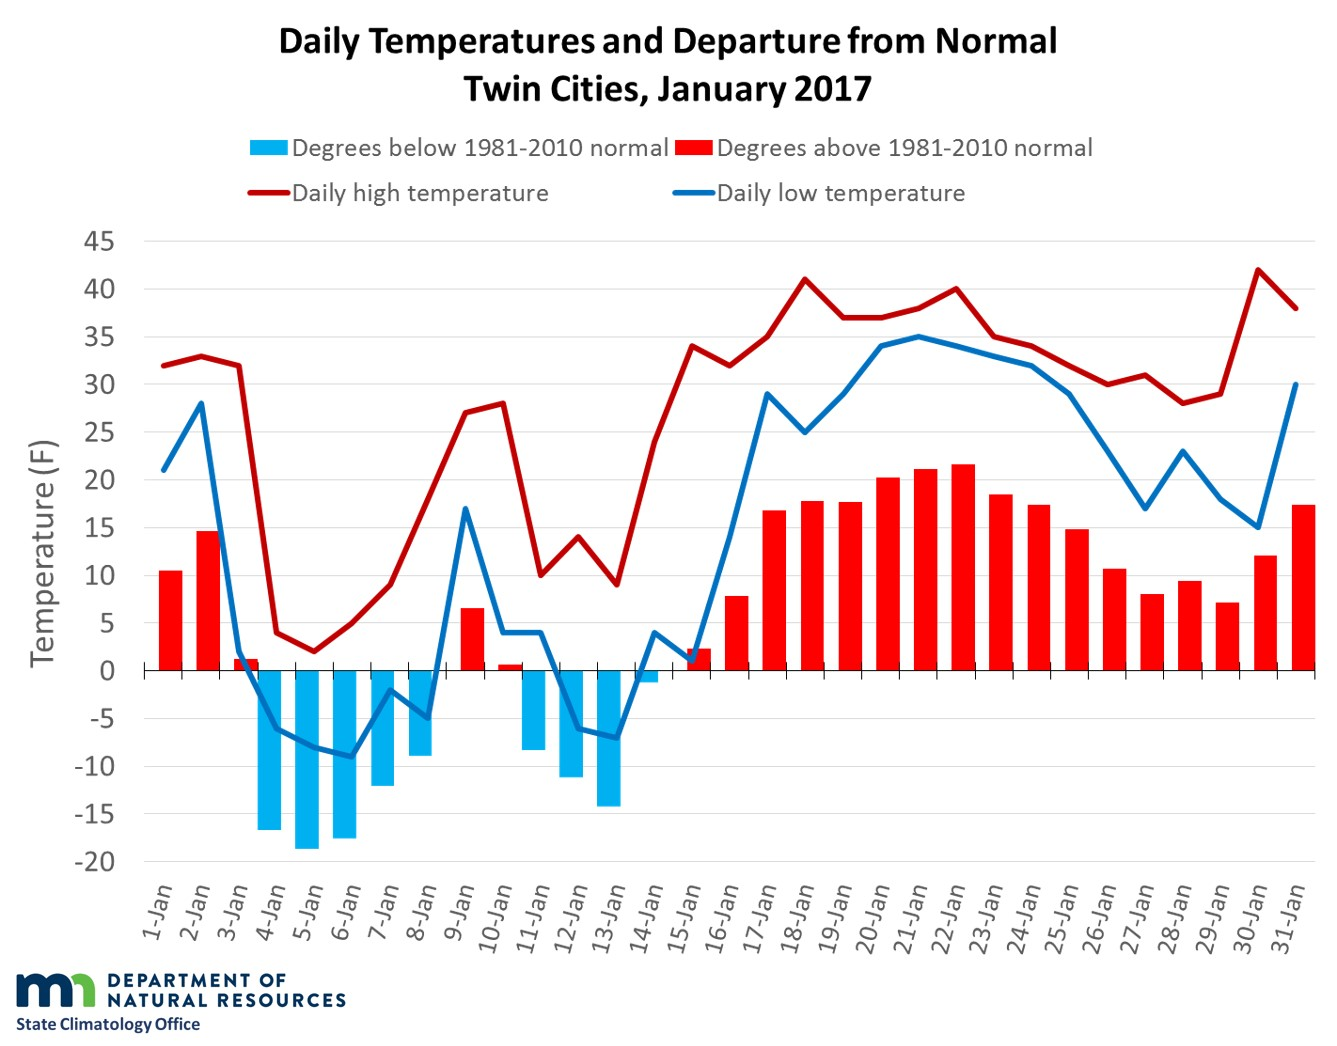 Graph of January 2017 temperatures and departures in the Twin Cities